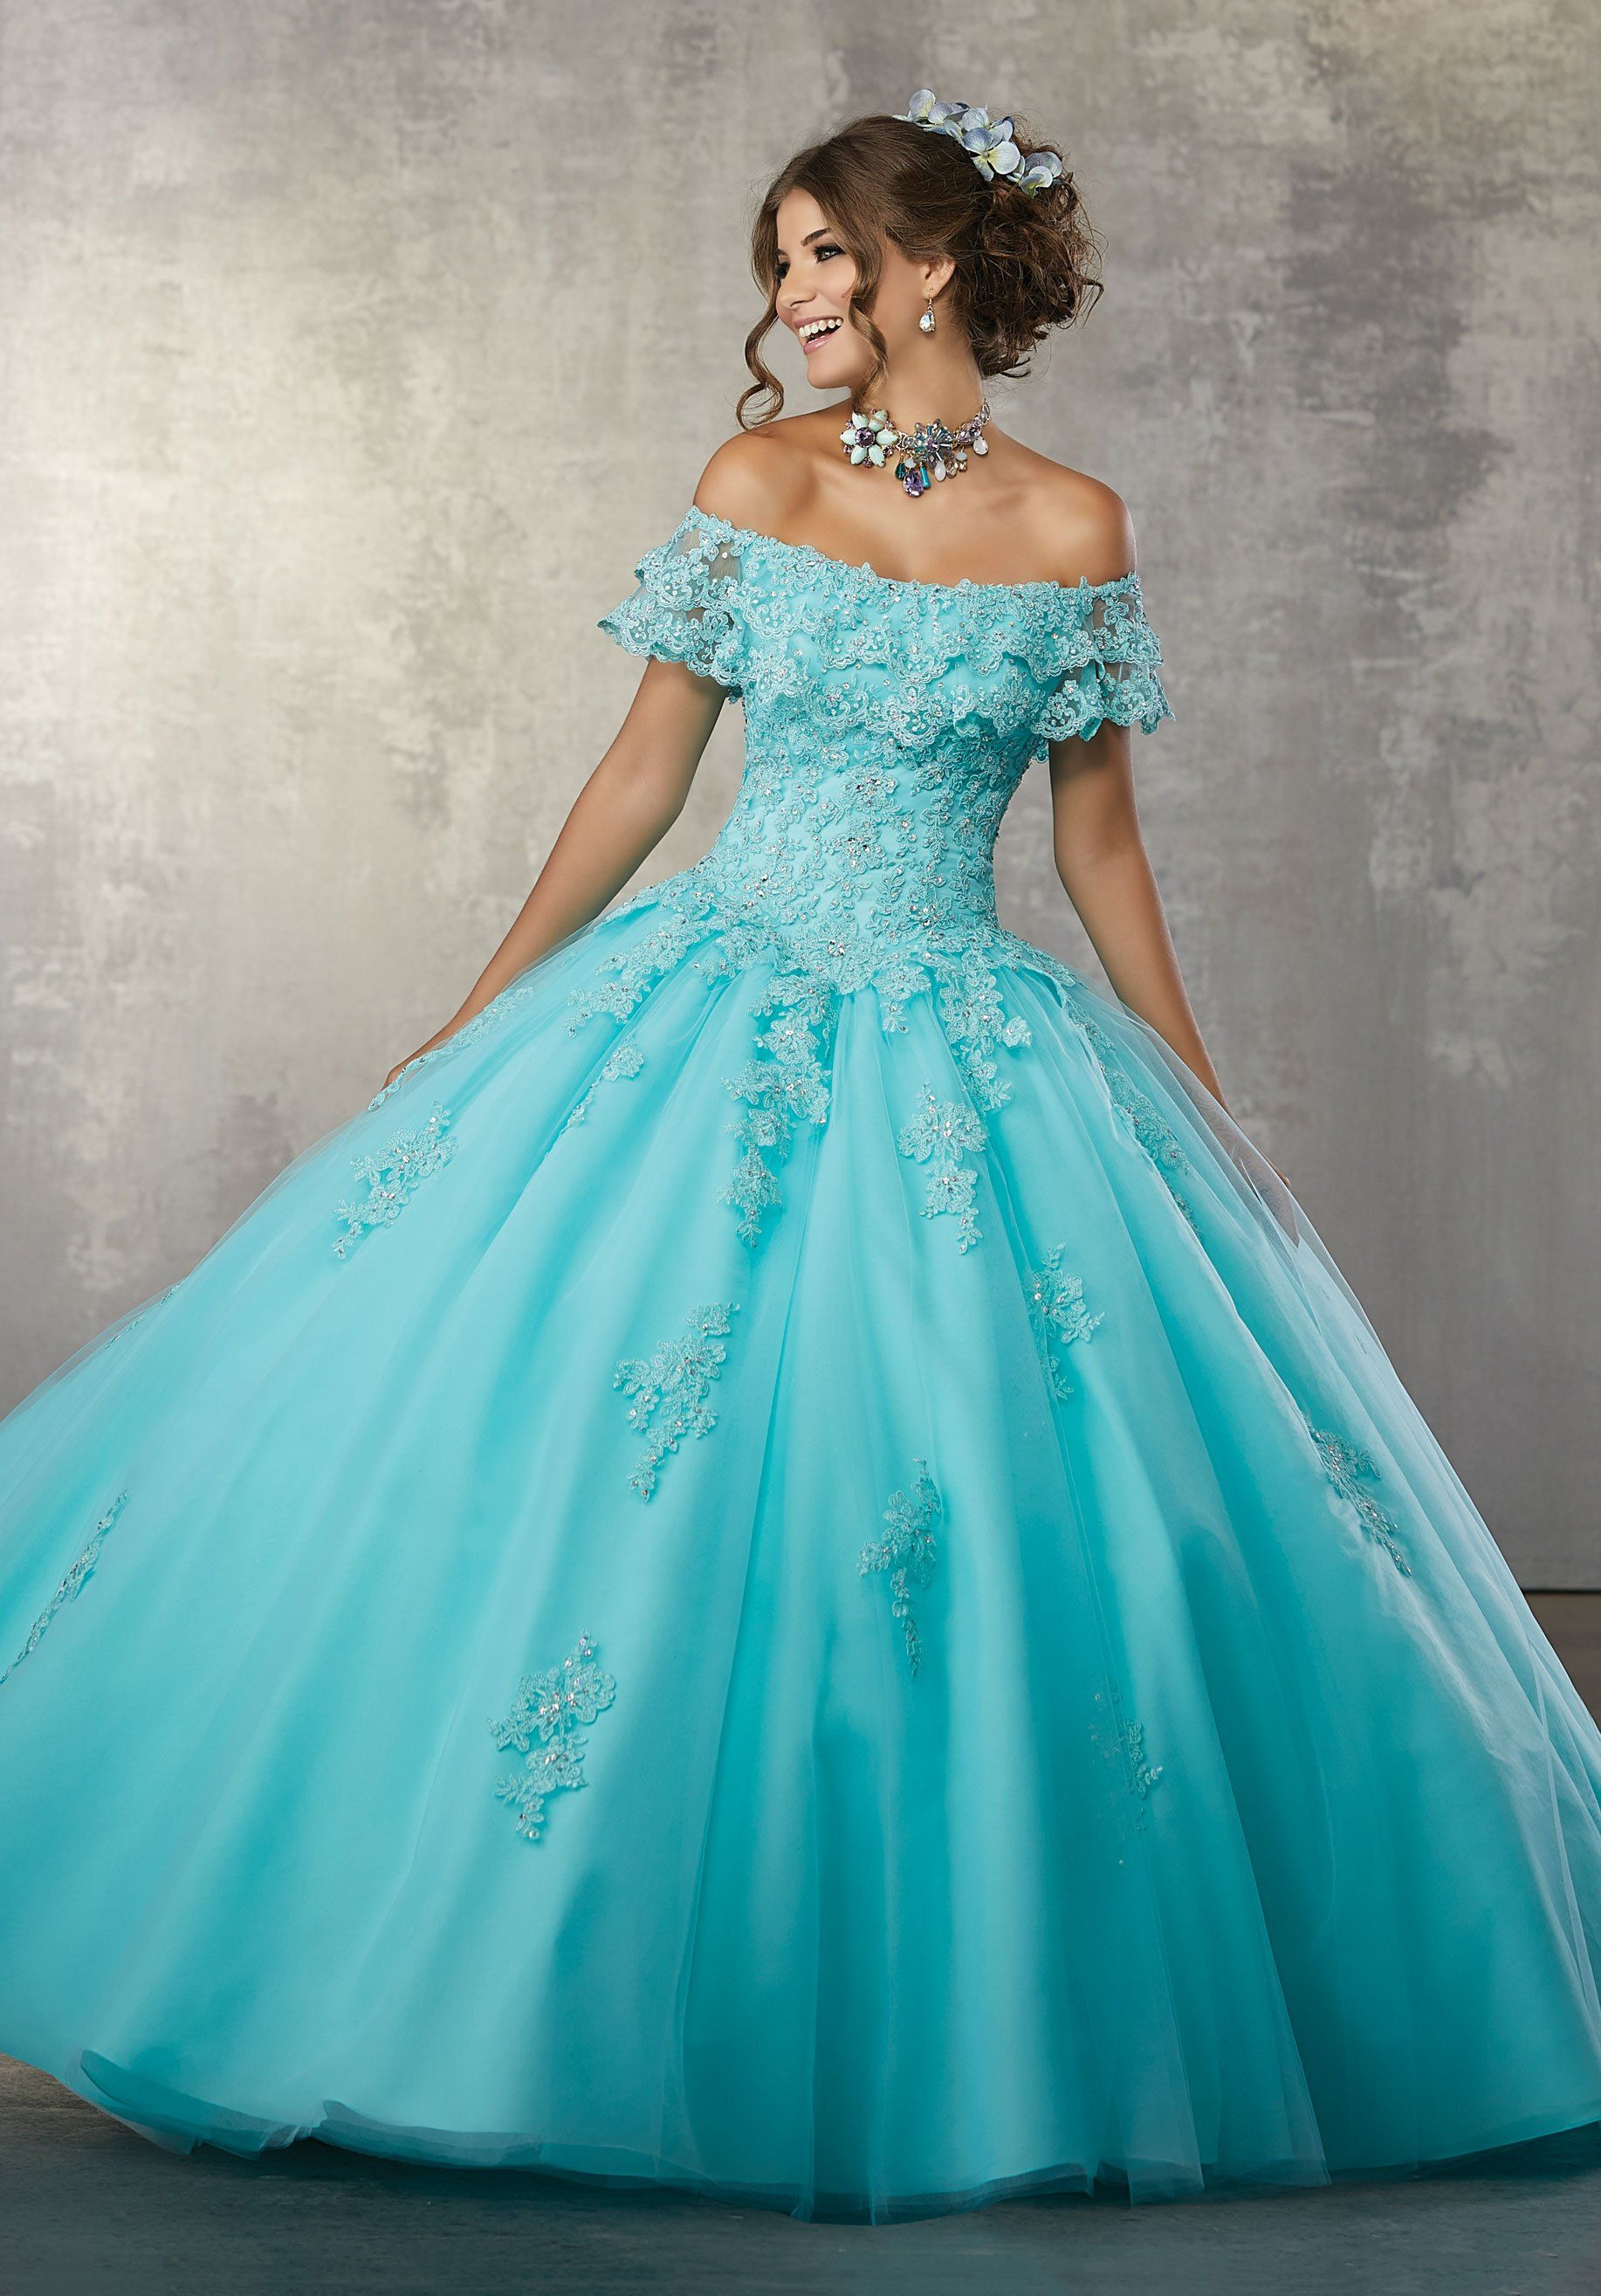 69c665f339f ... de envío aproximadamente 3 meses. Off the Shoulder Lace Quinceanera  Dress by Mori Lee Vizcaya 89168